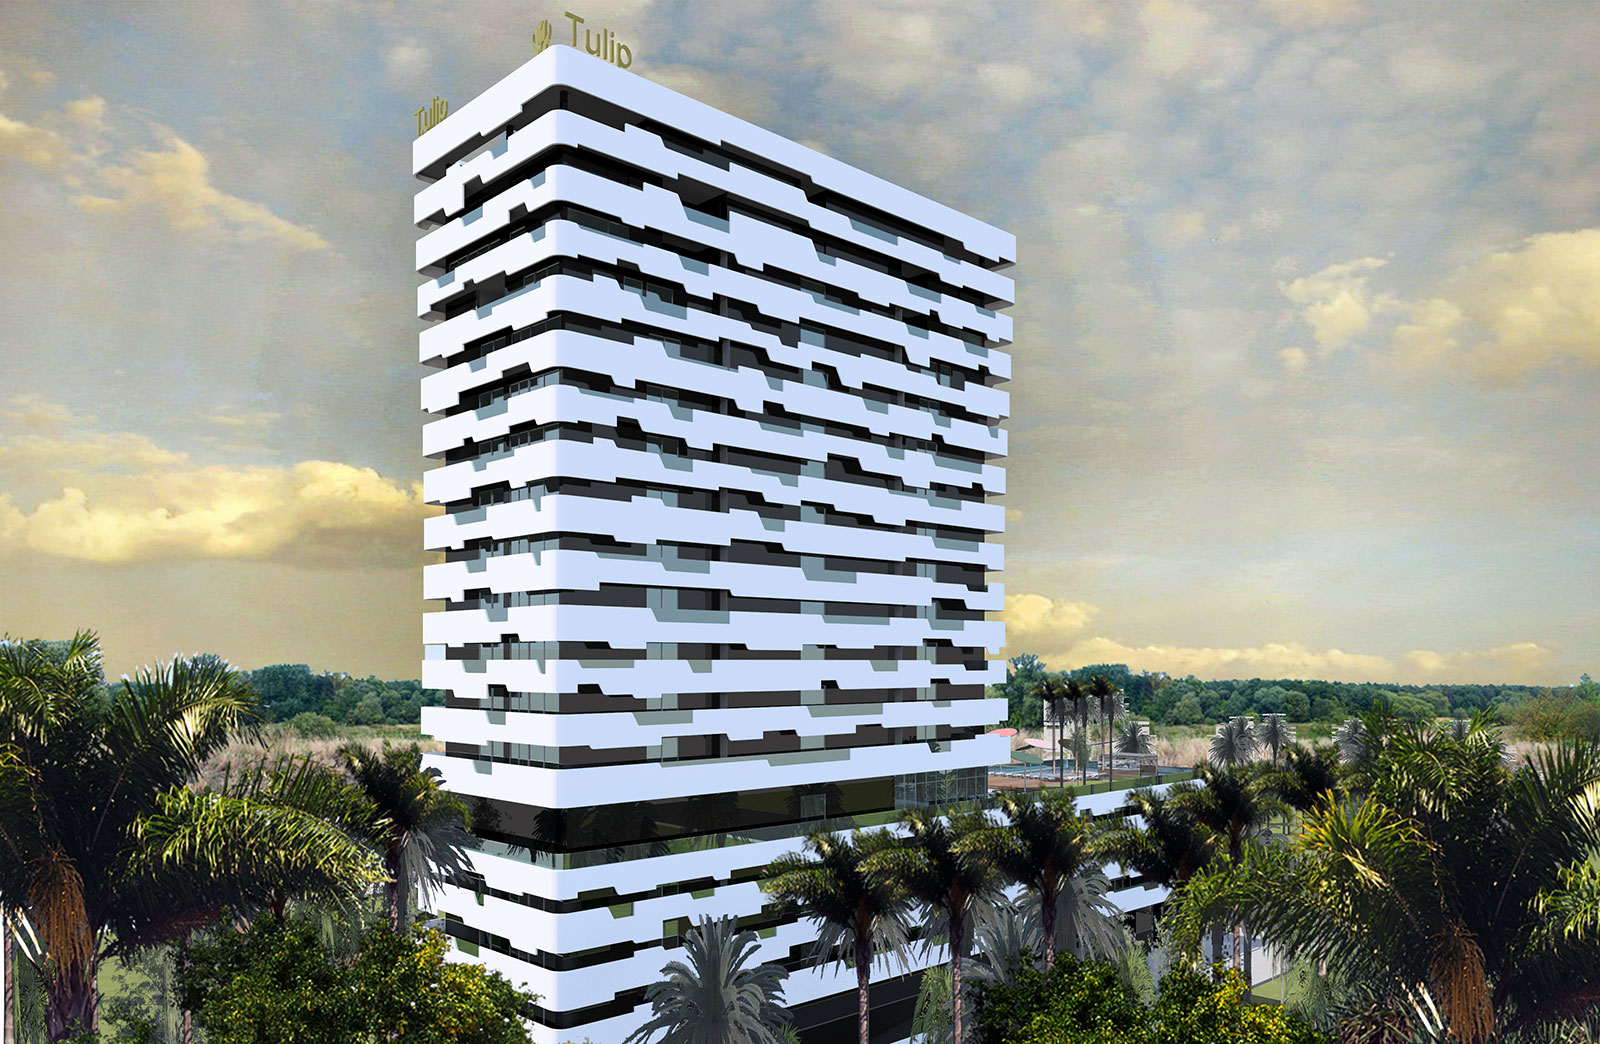 d5b19cd5d729 The building is a residential hotel which will complement the structure of  the Golden Tulip Hotel located on the adjacent plot of land, although its  ...